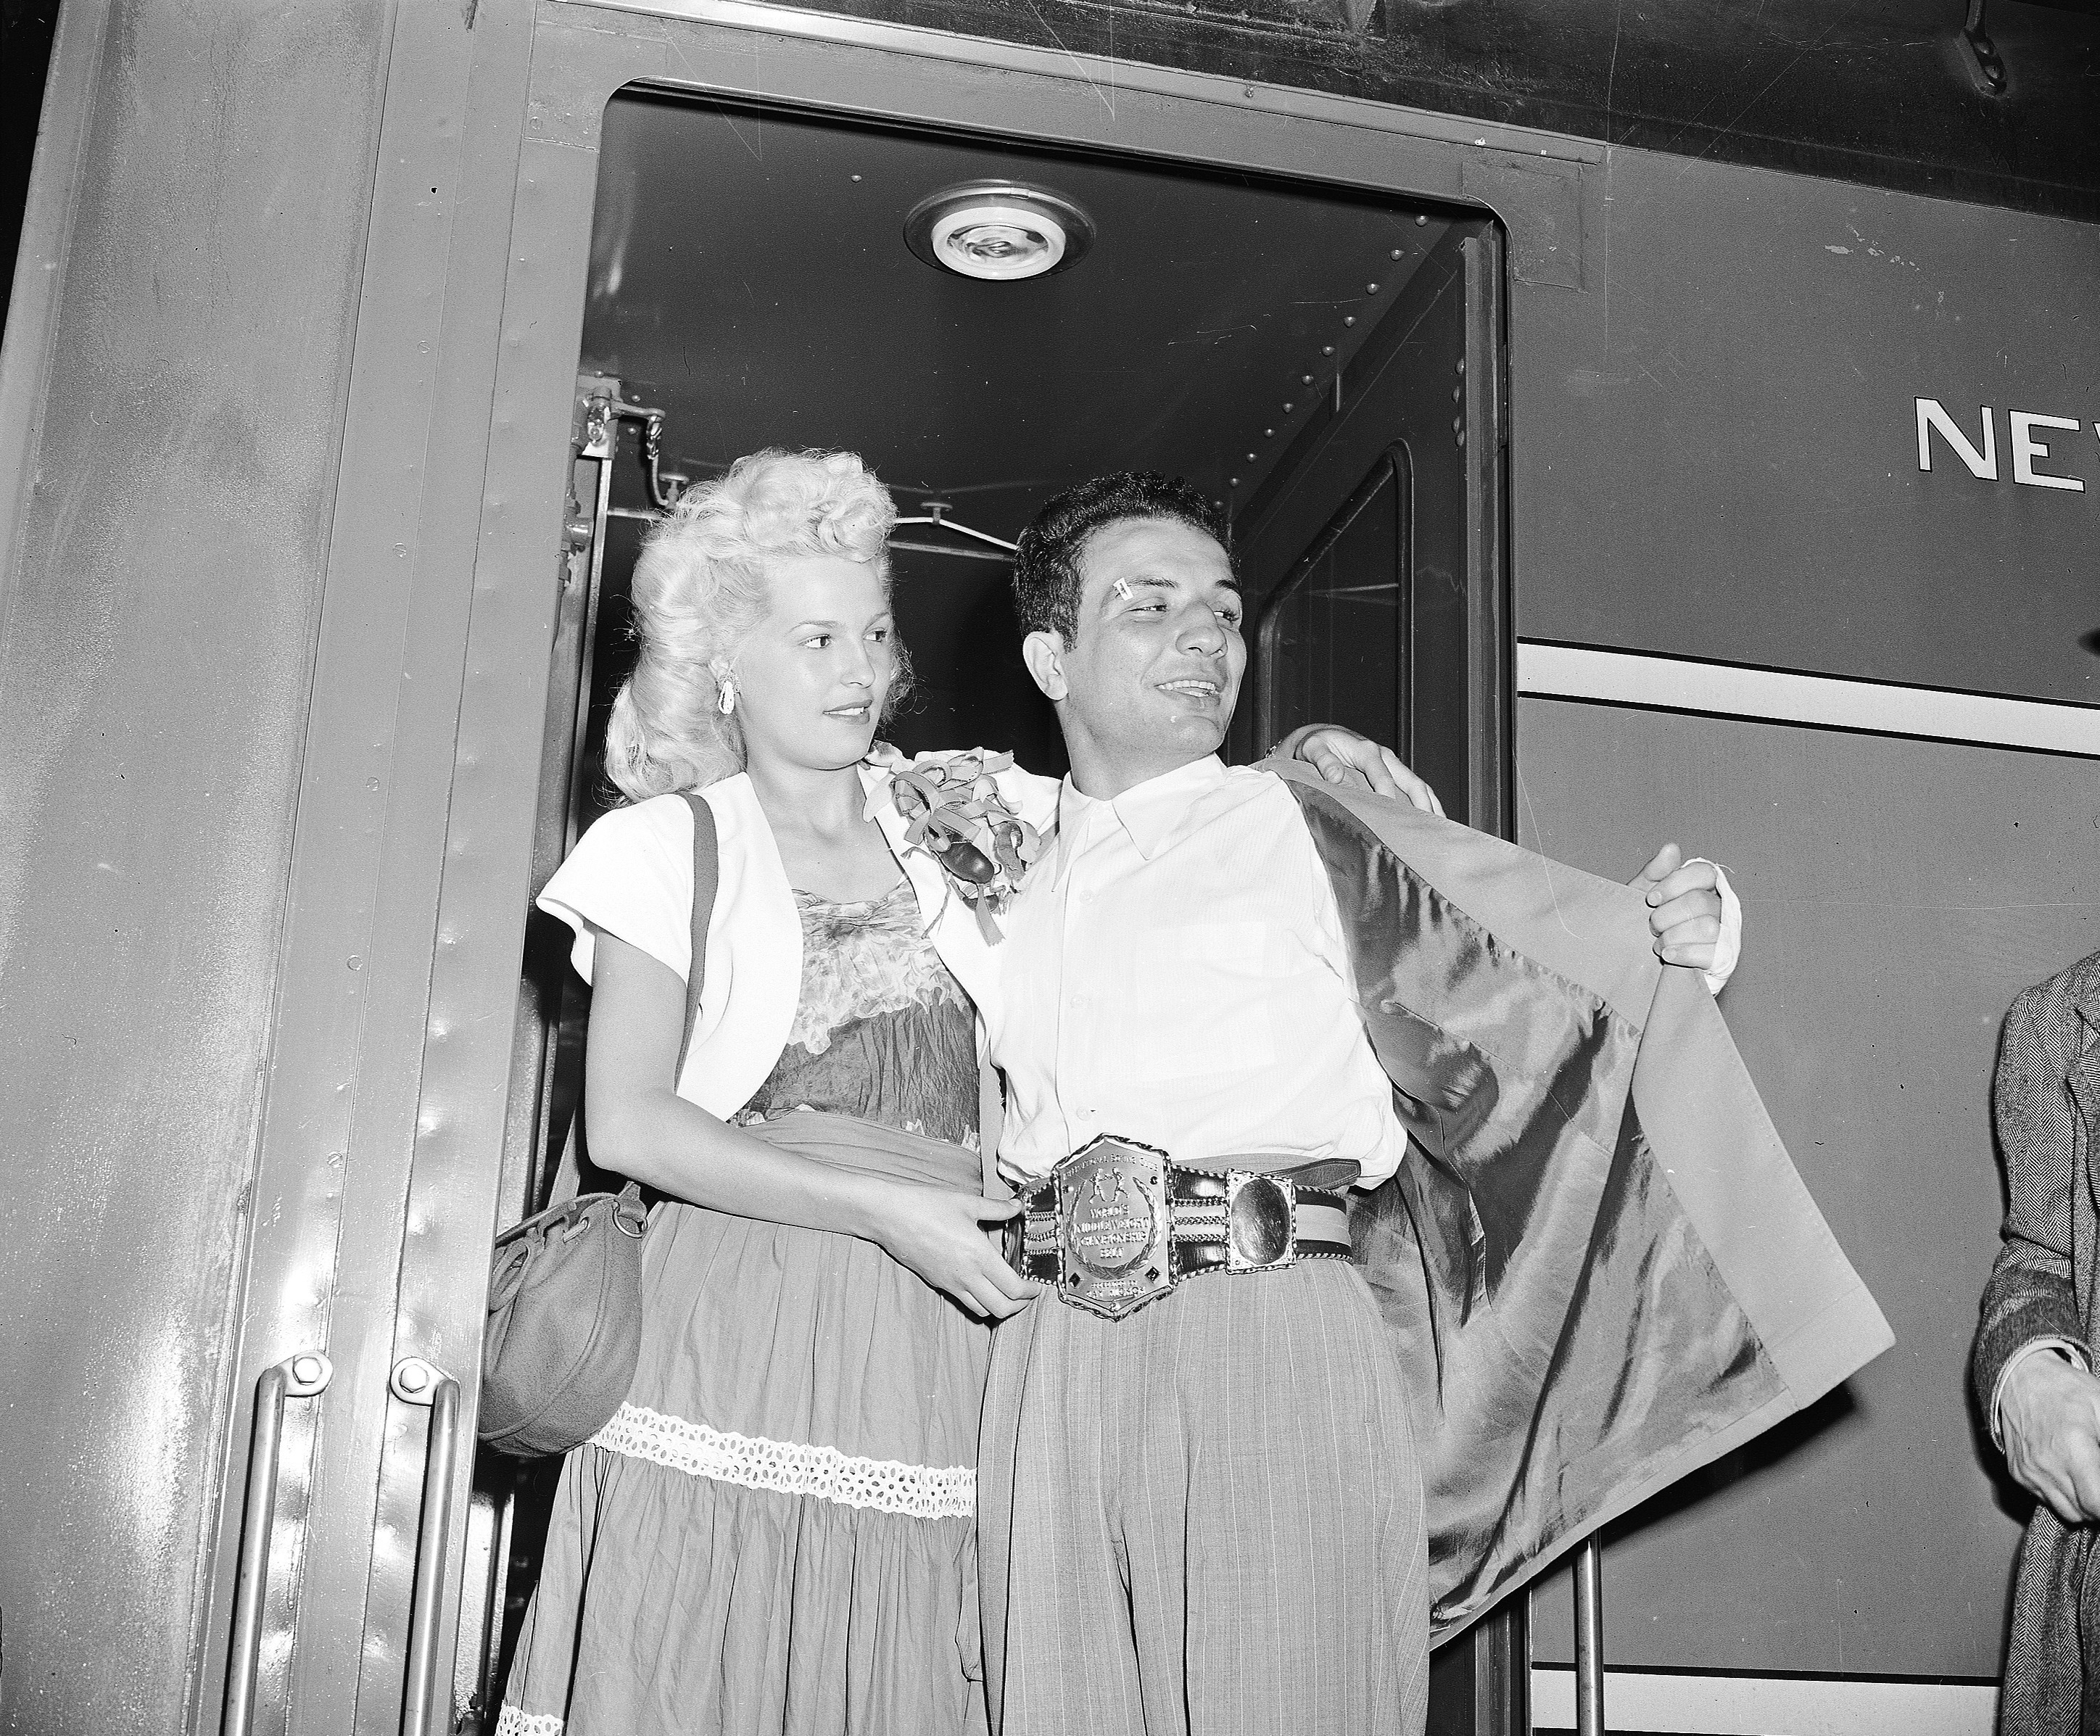 "FILE - In this June 18, 1949, file photo, newly crowned World Middleweight Boxing Champion Jake LaMotta, accompanied by his wife Vicky, arrives at Grand Central Terminal in New York after defeating Marcel Cerdan in Detroit on June 16. LaMotta, whose life was depicted in the film ""Raging Bull,"" died Tuesday, Sept. 19, 2017, at a Miami-area hospital from complications of pneumonia. He was 95. (AP Photo/File)"